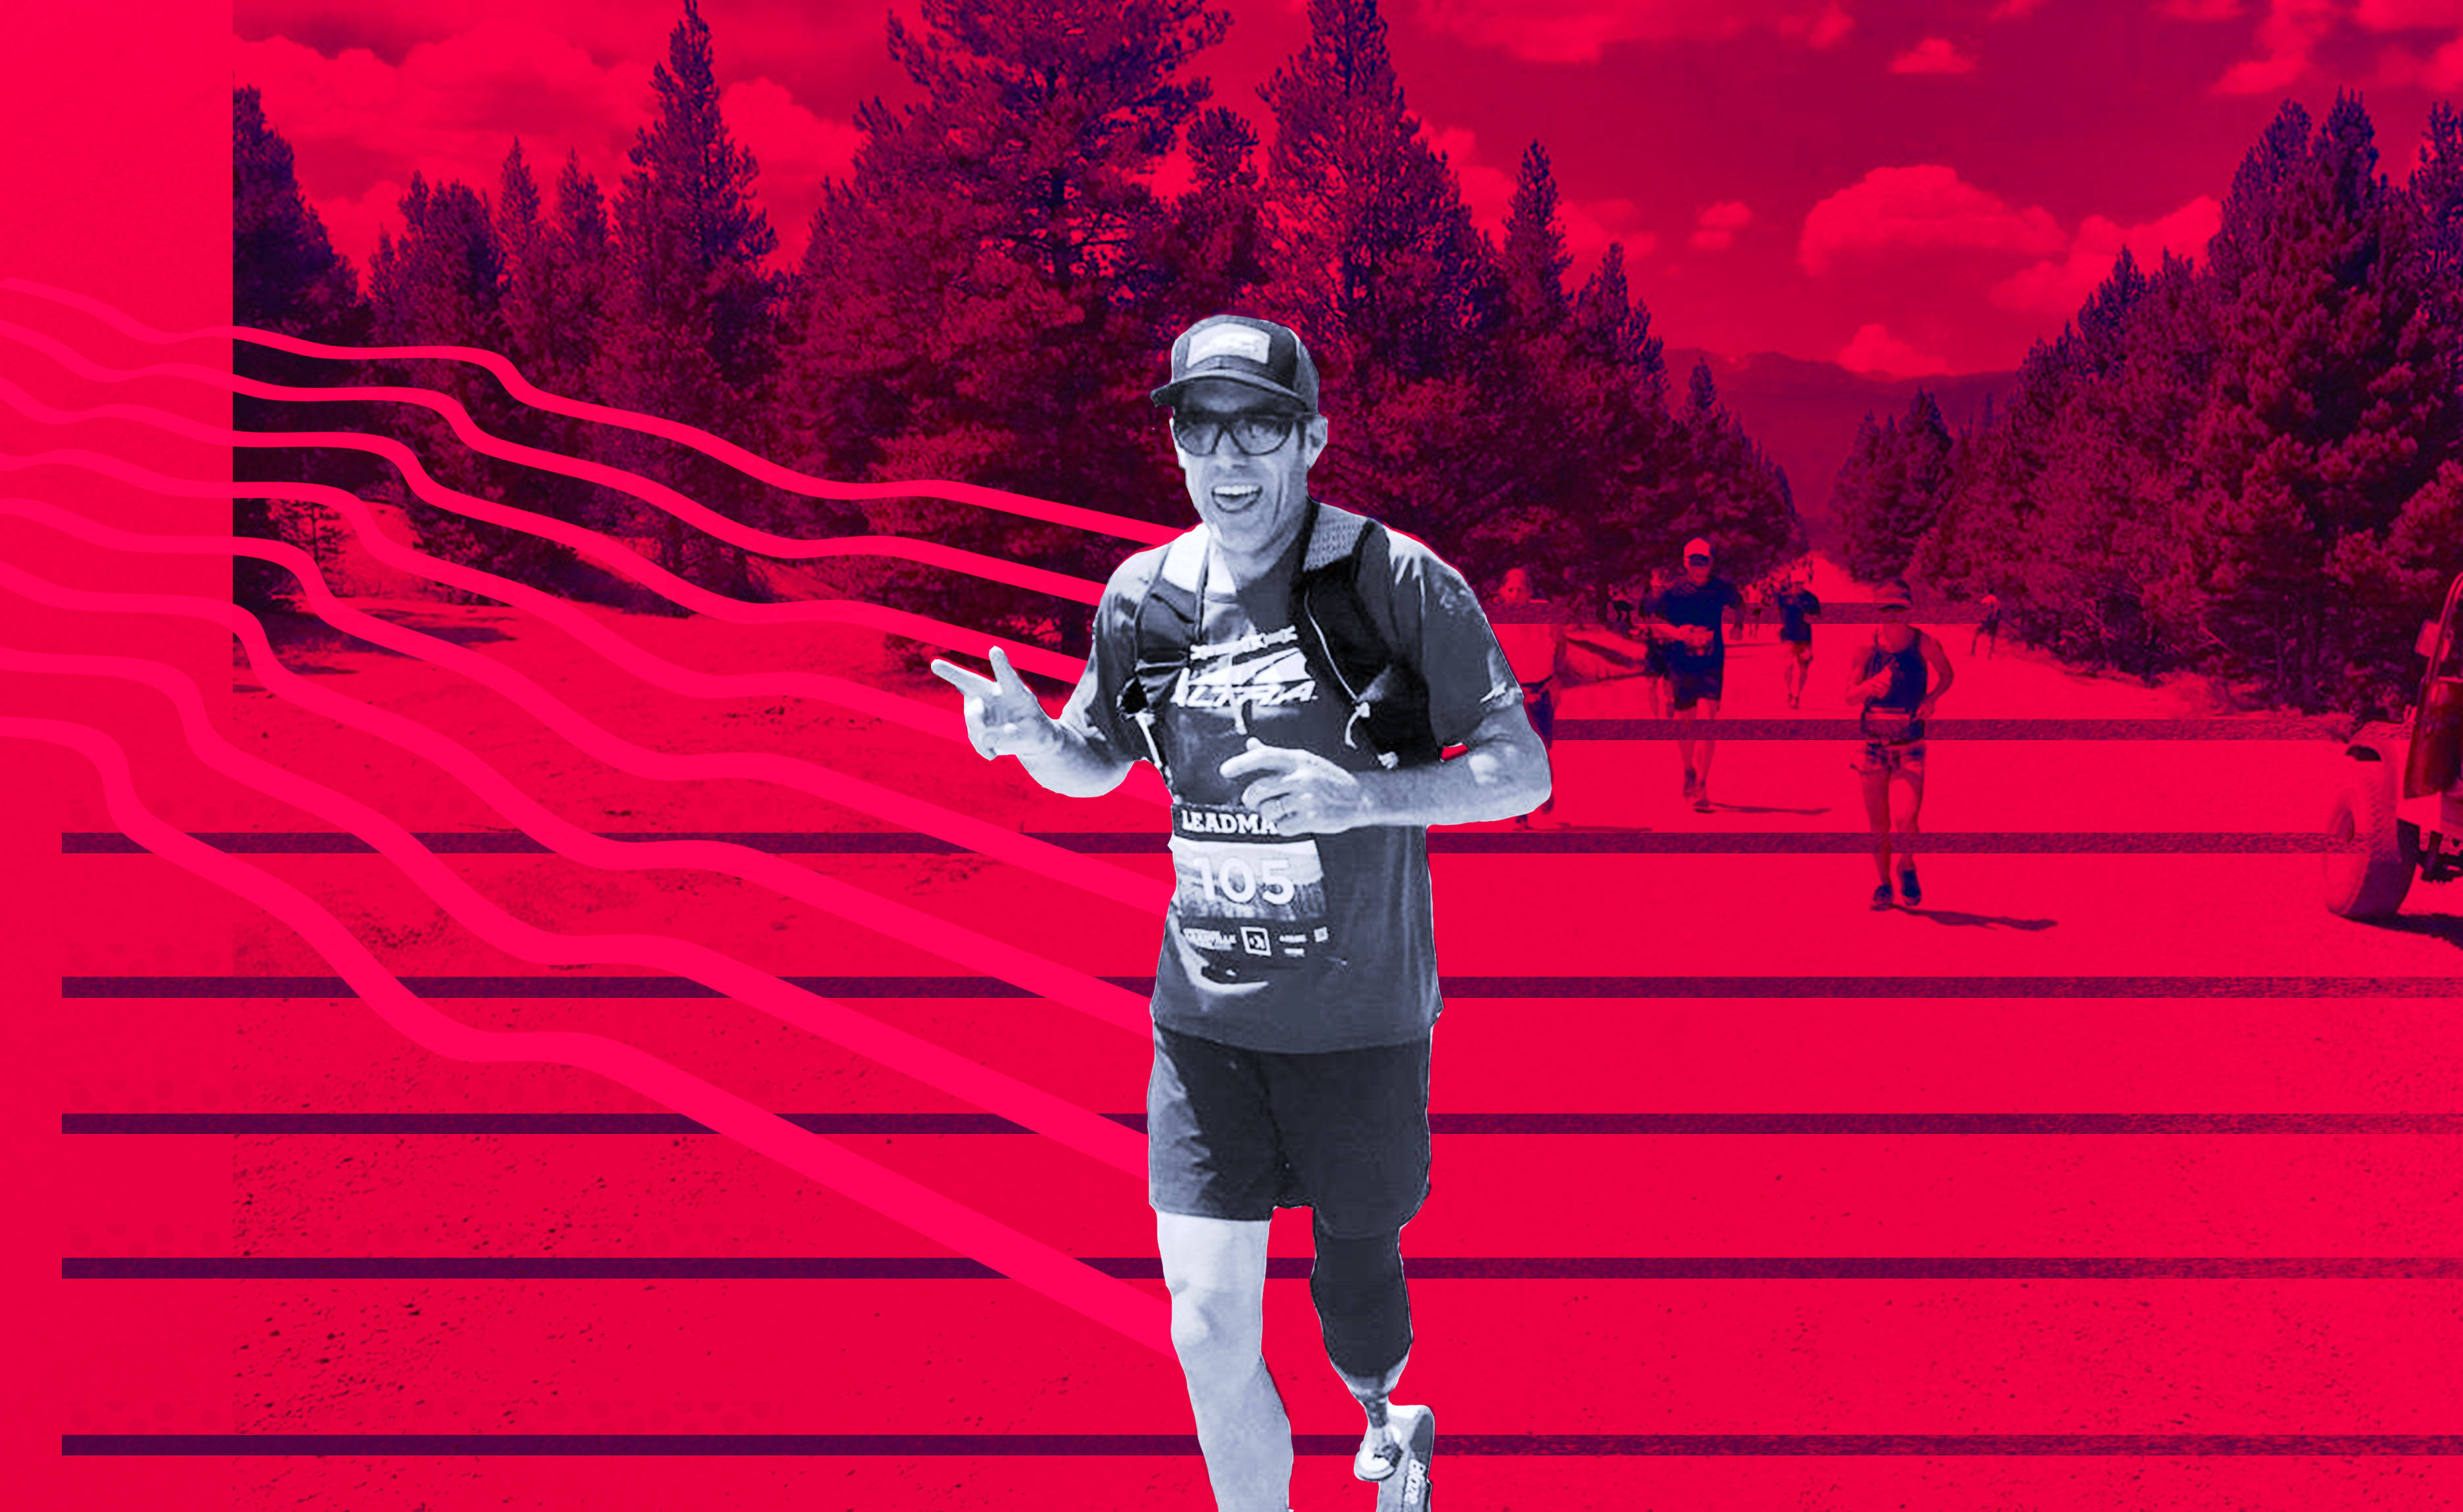 A conversation with an elite ultramarathoner on what running after a leg amputation is really like